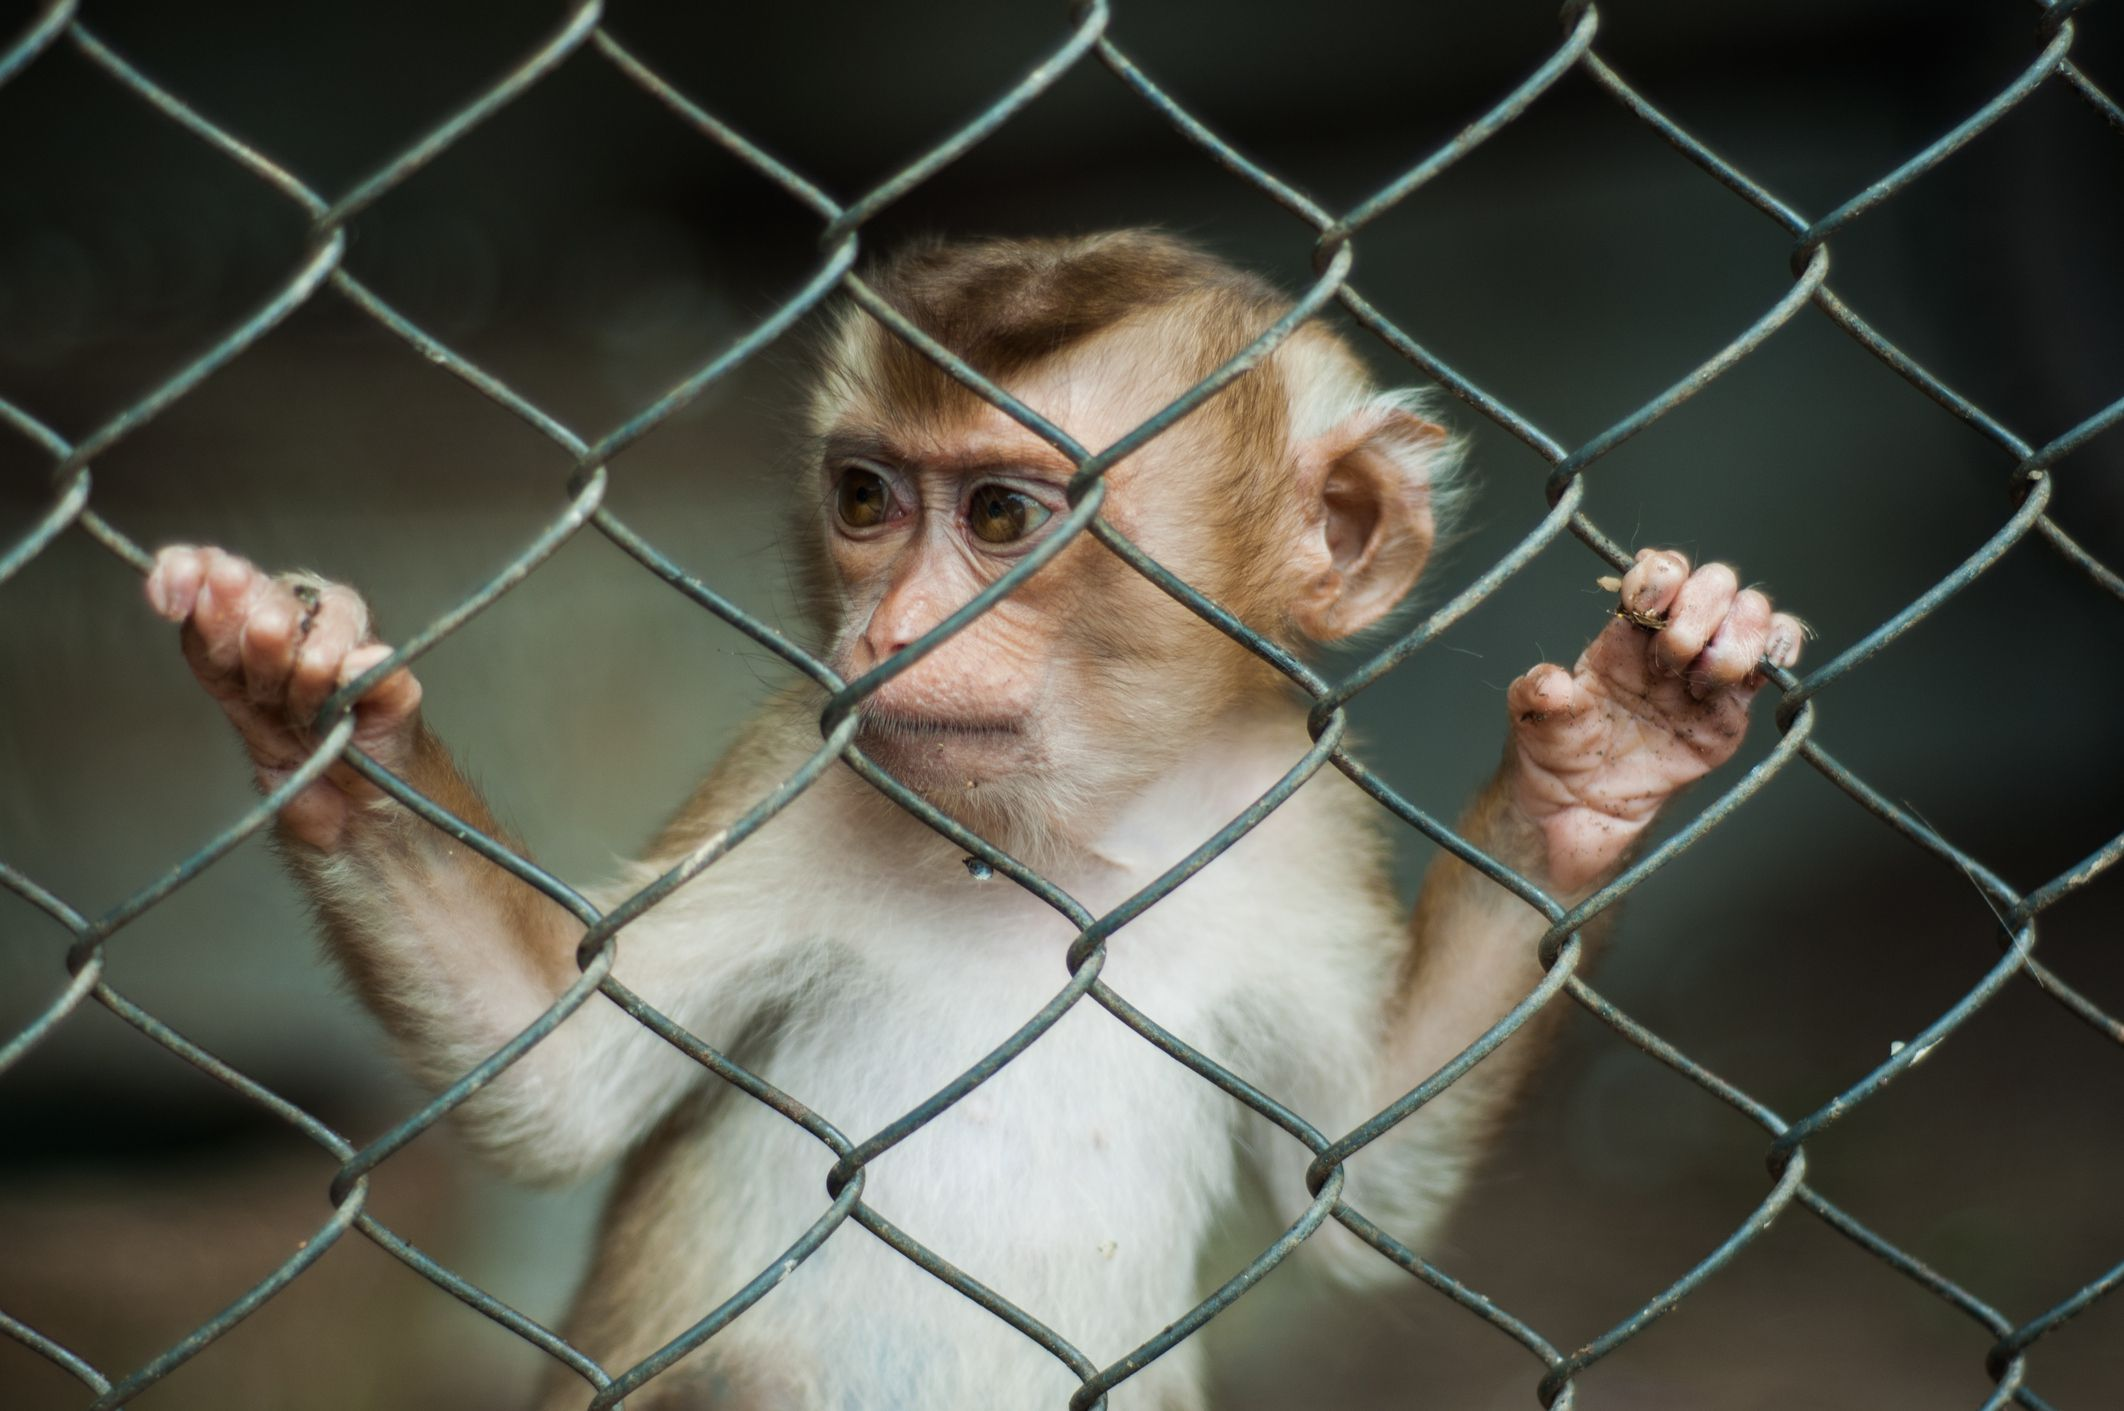 Problems With Keeping a Pet Monkey